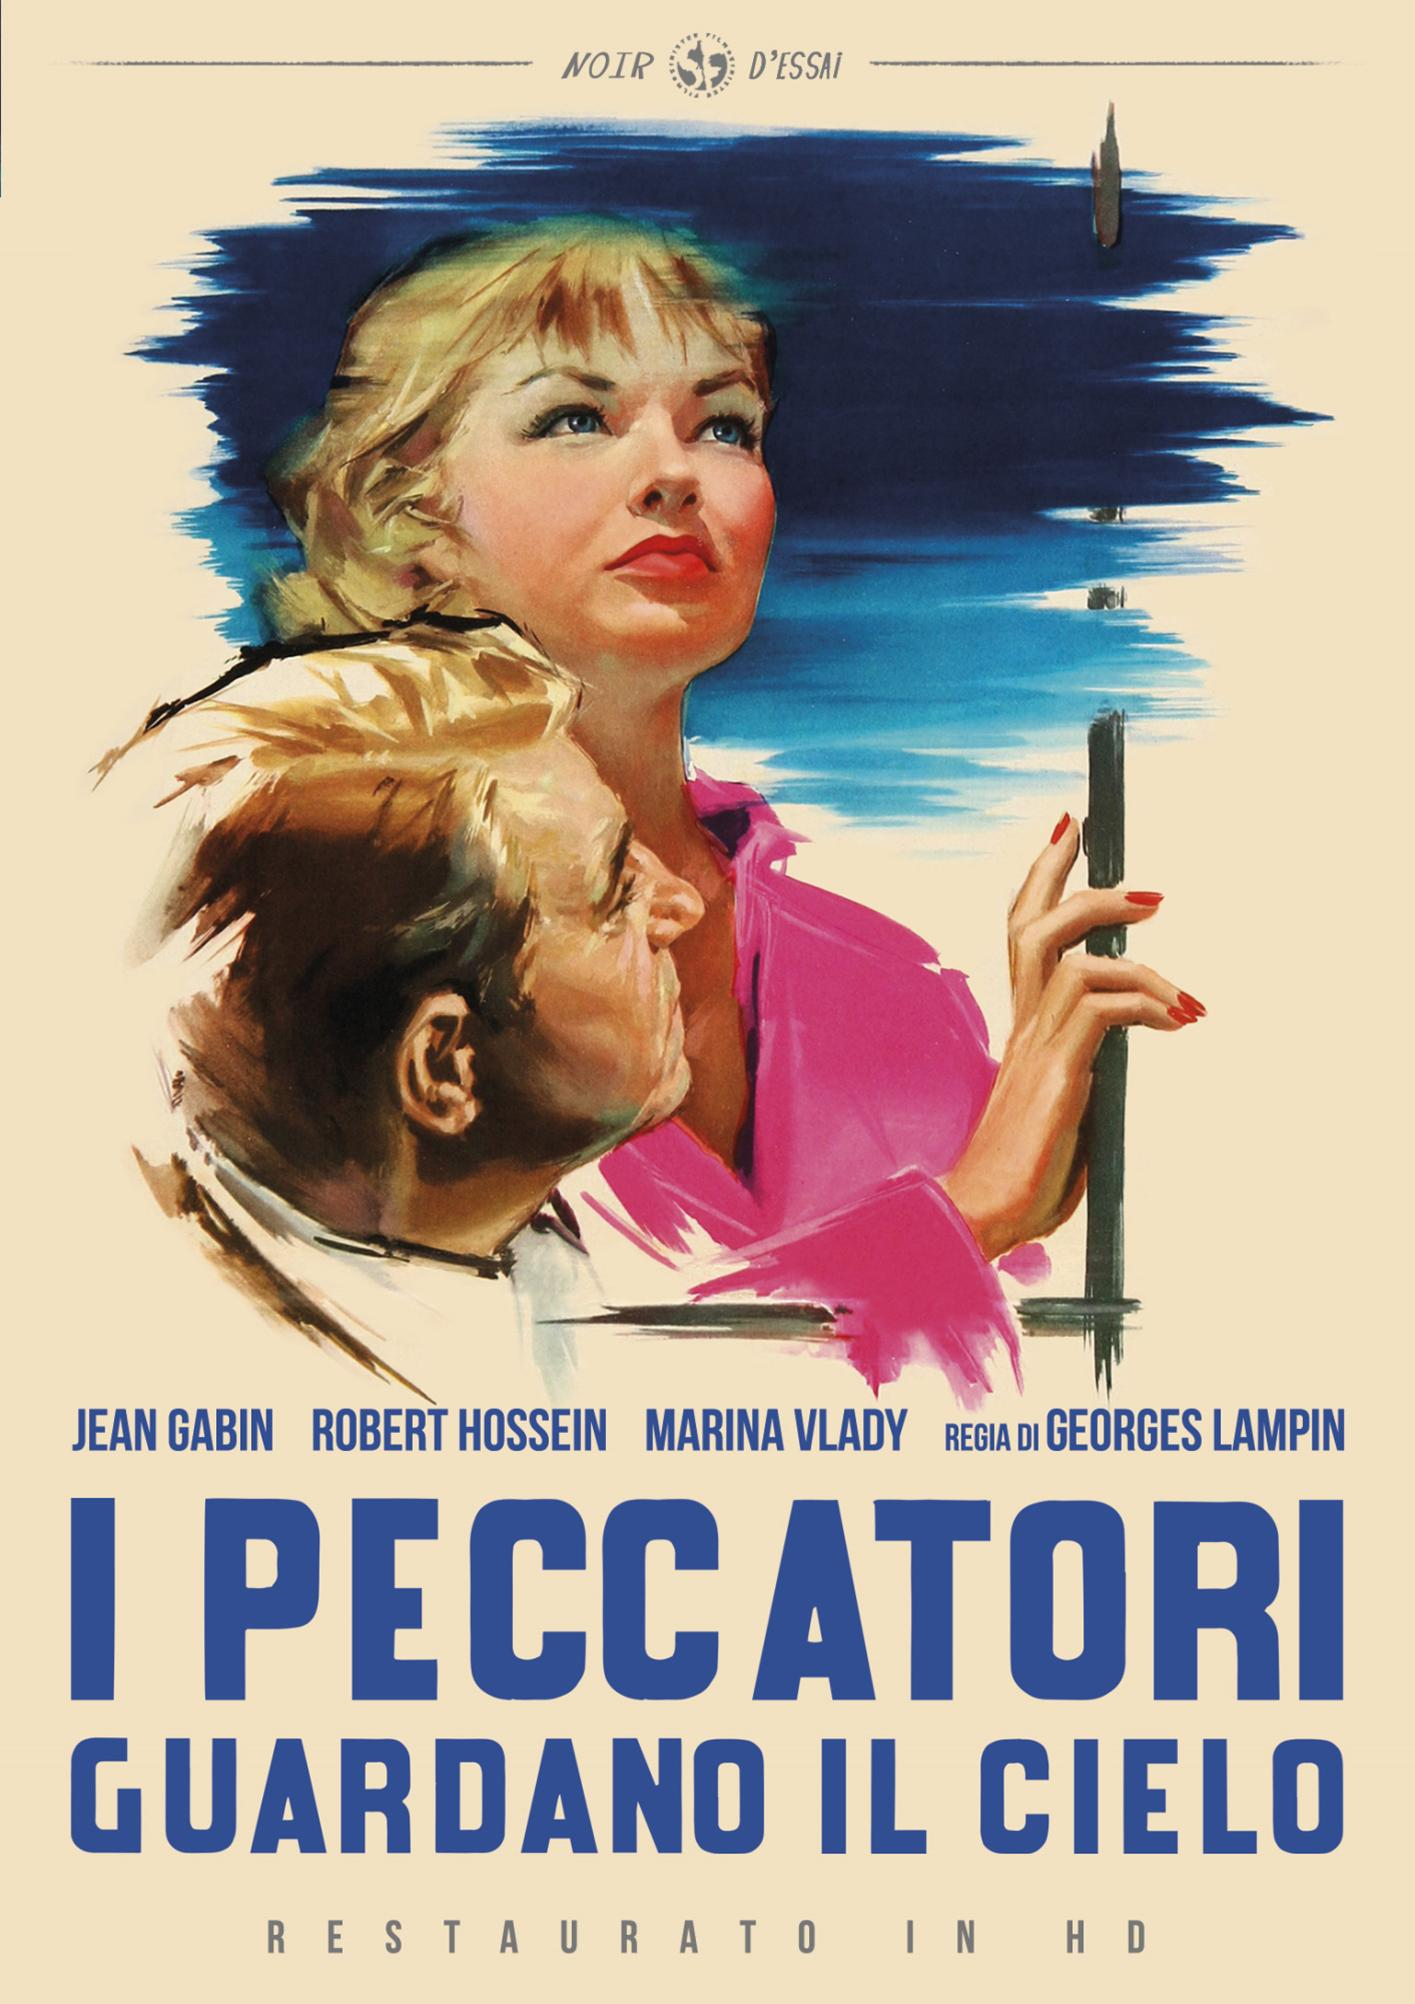 PECCATORI GUARDANO IL CIELO (I) (RESTAURATO IN HD) (DVD)